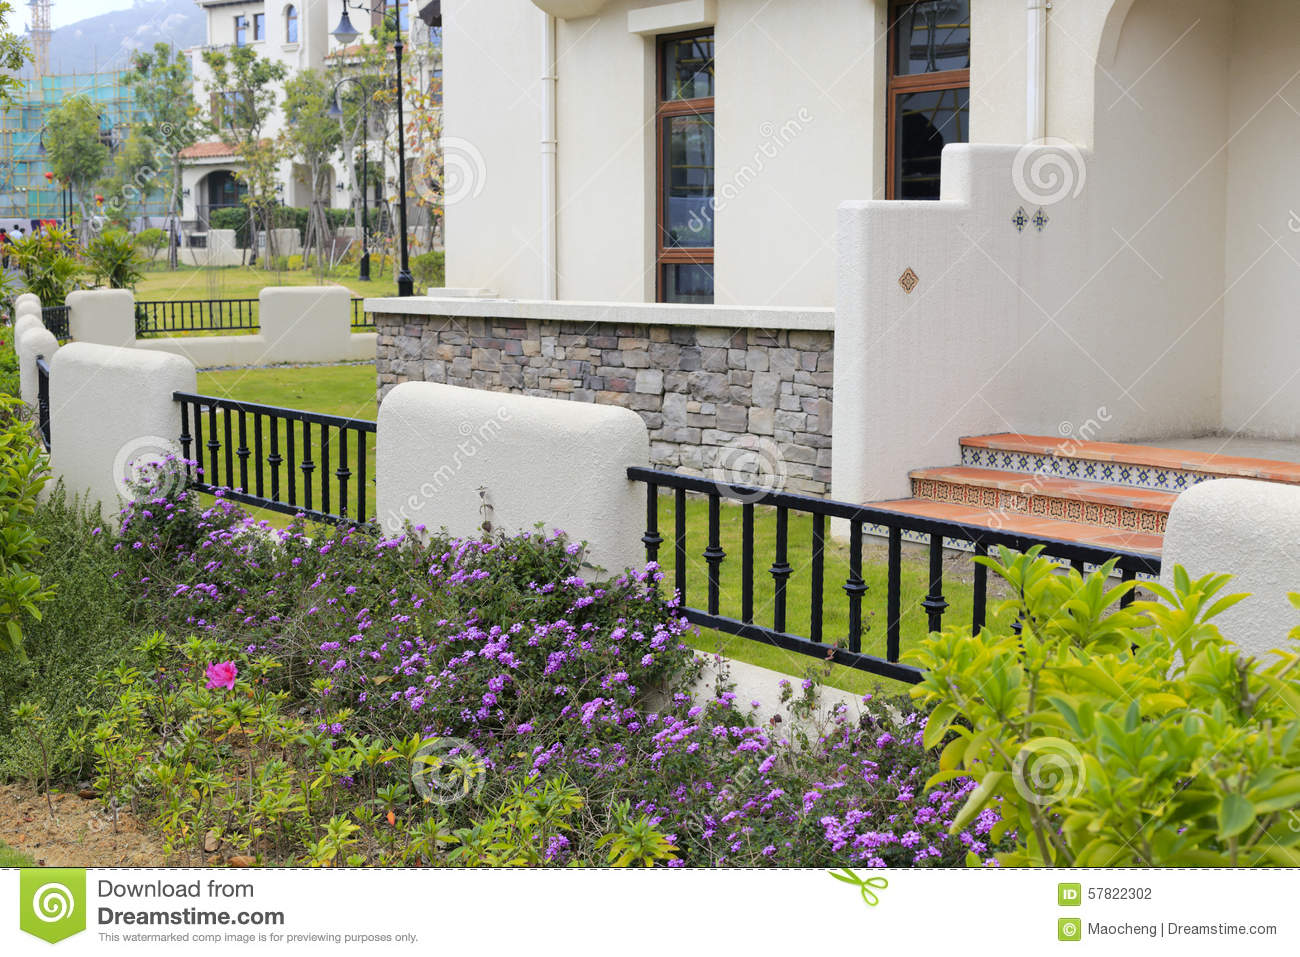 Stock Photo Spanish Style House Backyard New Zhangzhou City China Image57822302 on Spanish House Plans With Courtyard